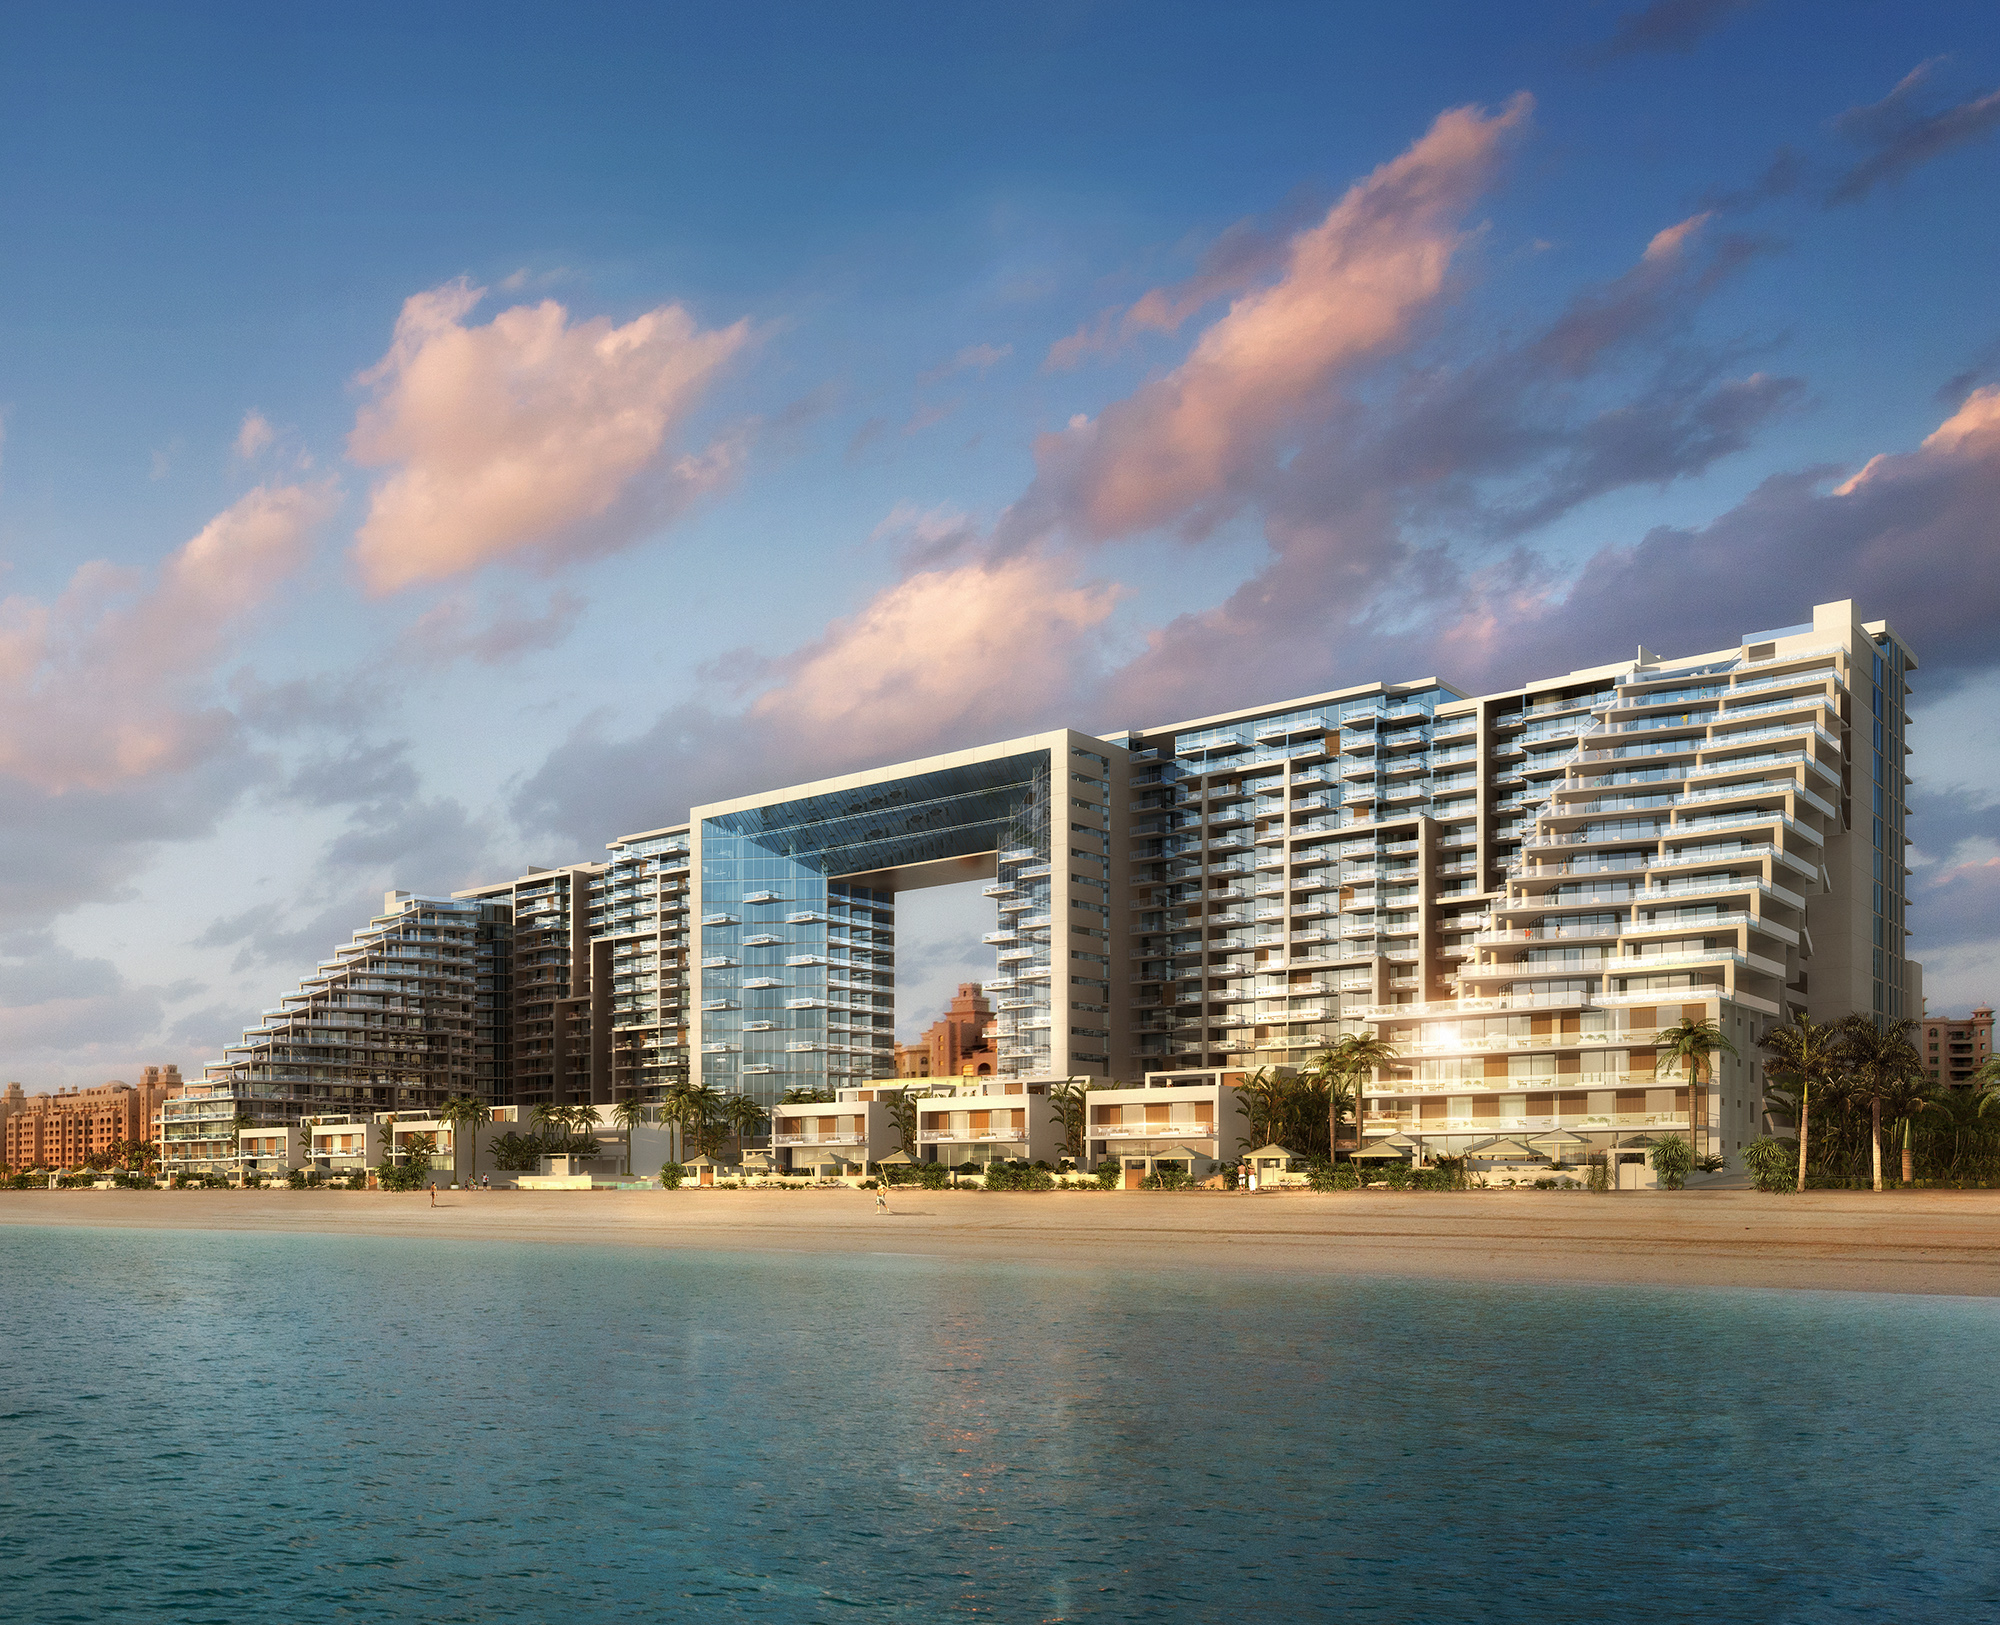 Dubai Hotel Apartments Jumeirah Beach